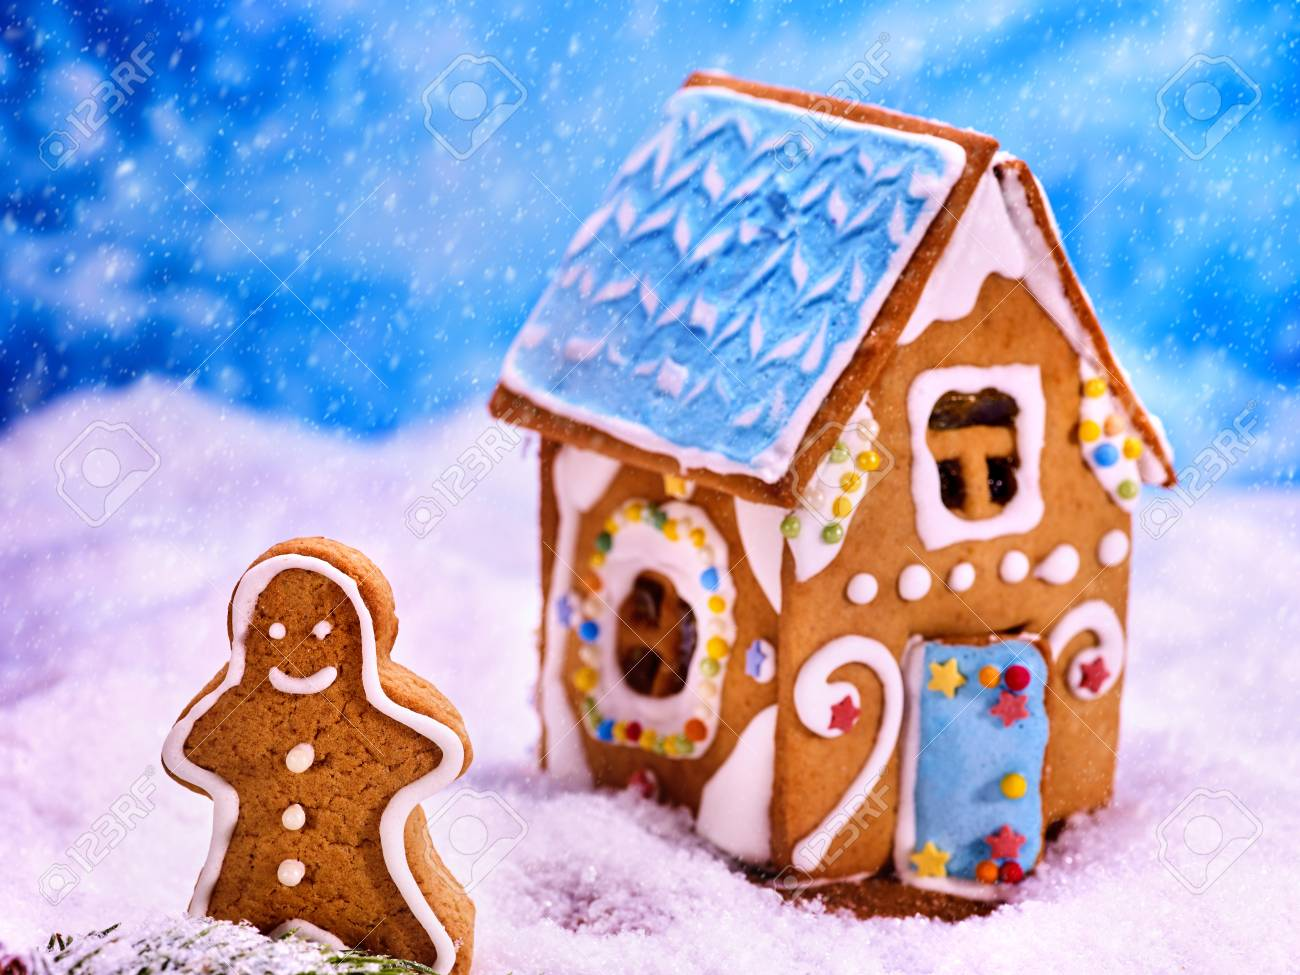 Christmas Gingerbread House Cartoon.Christmas Gingerbread House Cookie In Sugar Snow Next To Gingerbread